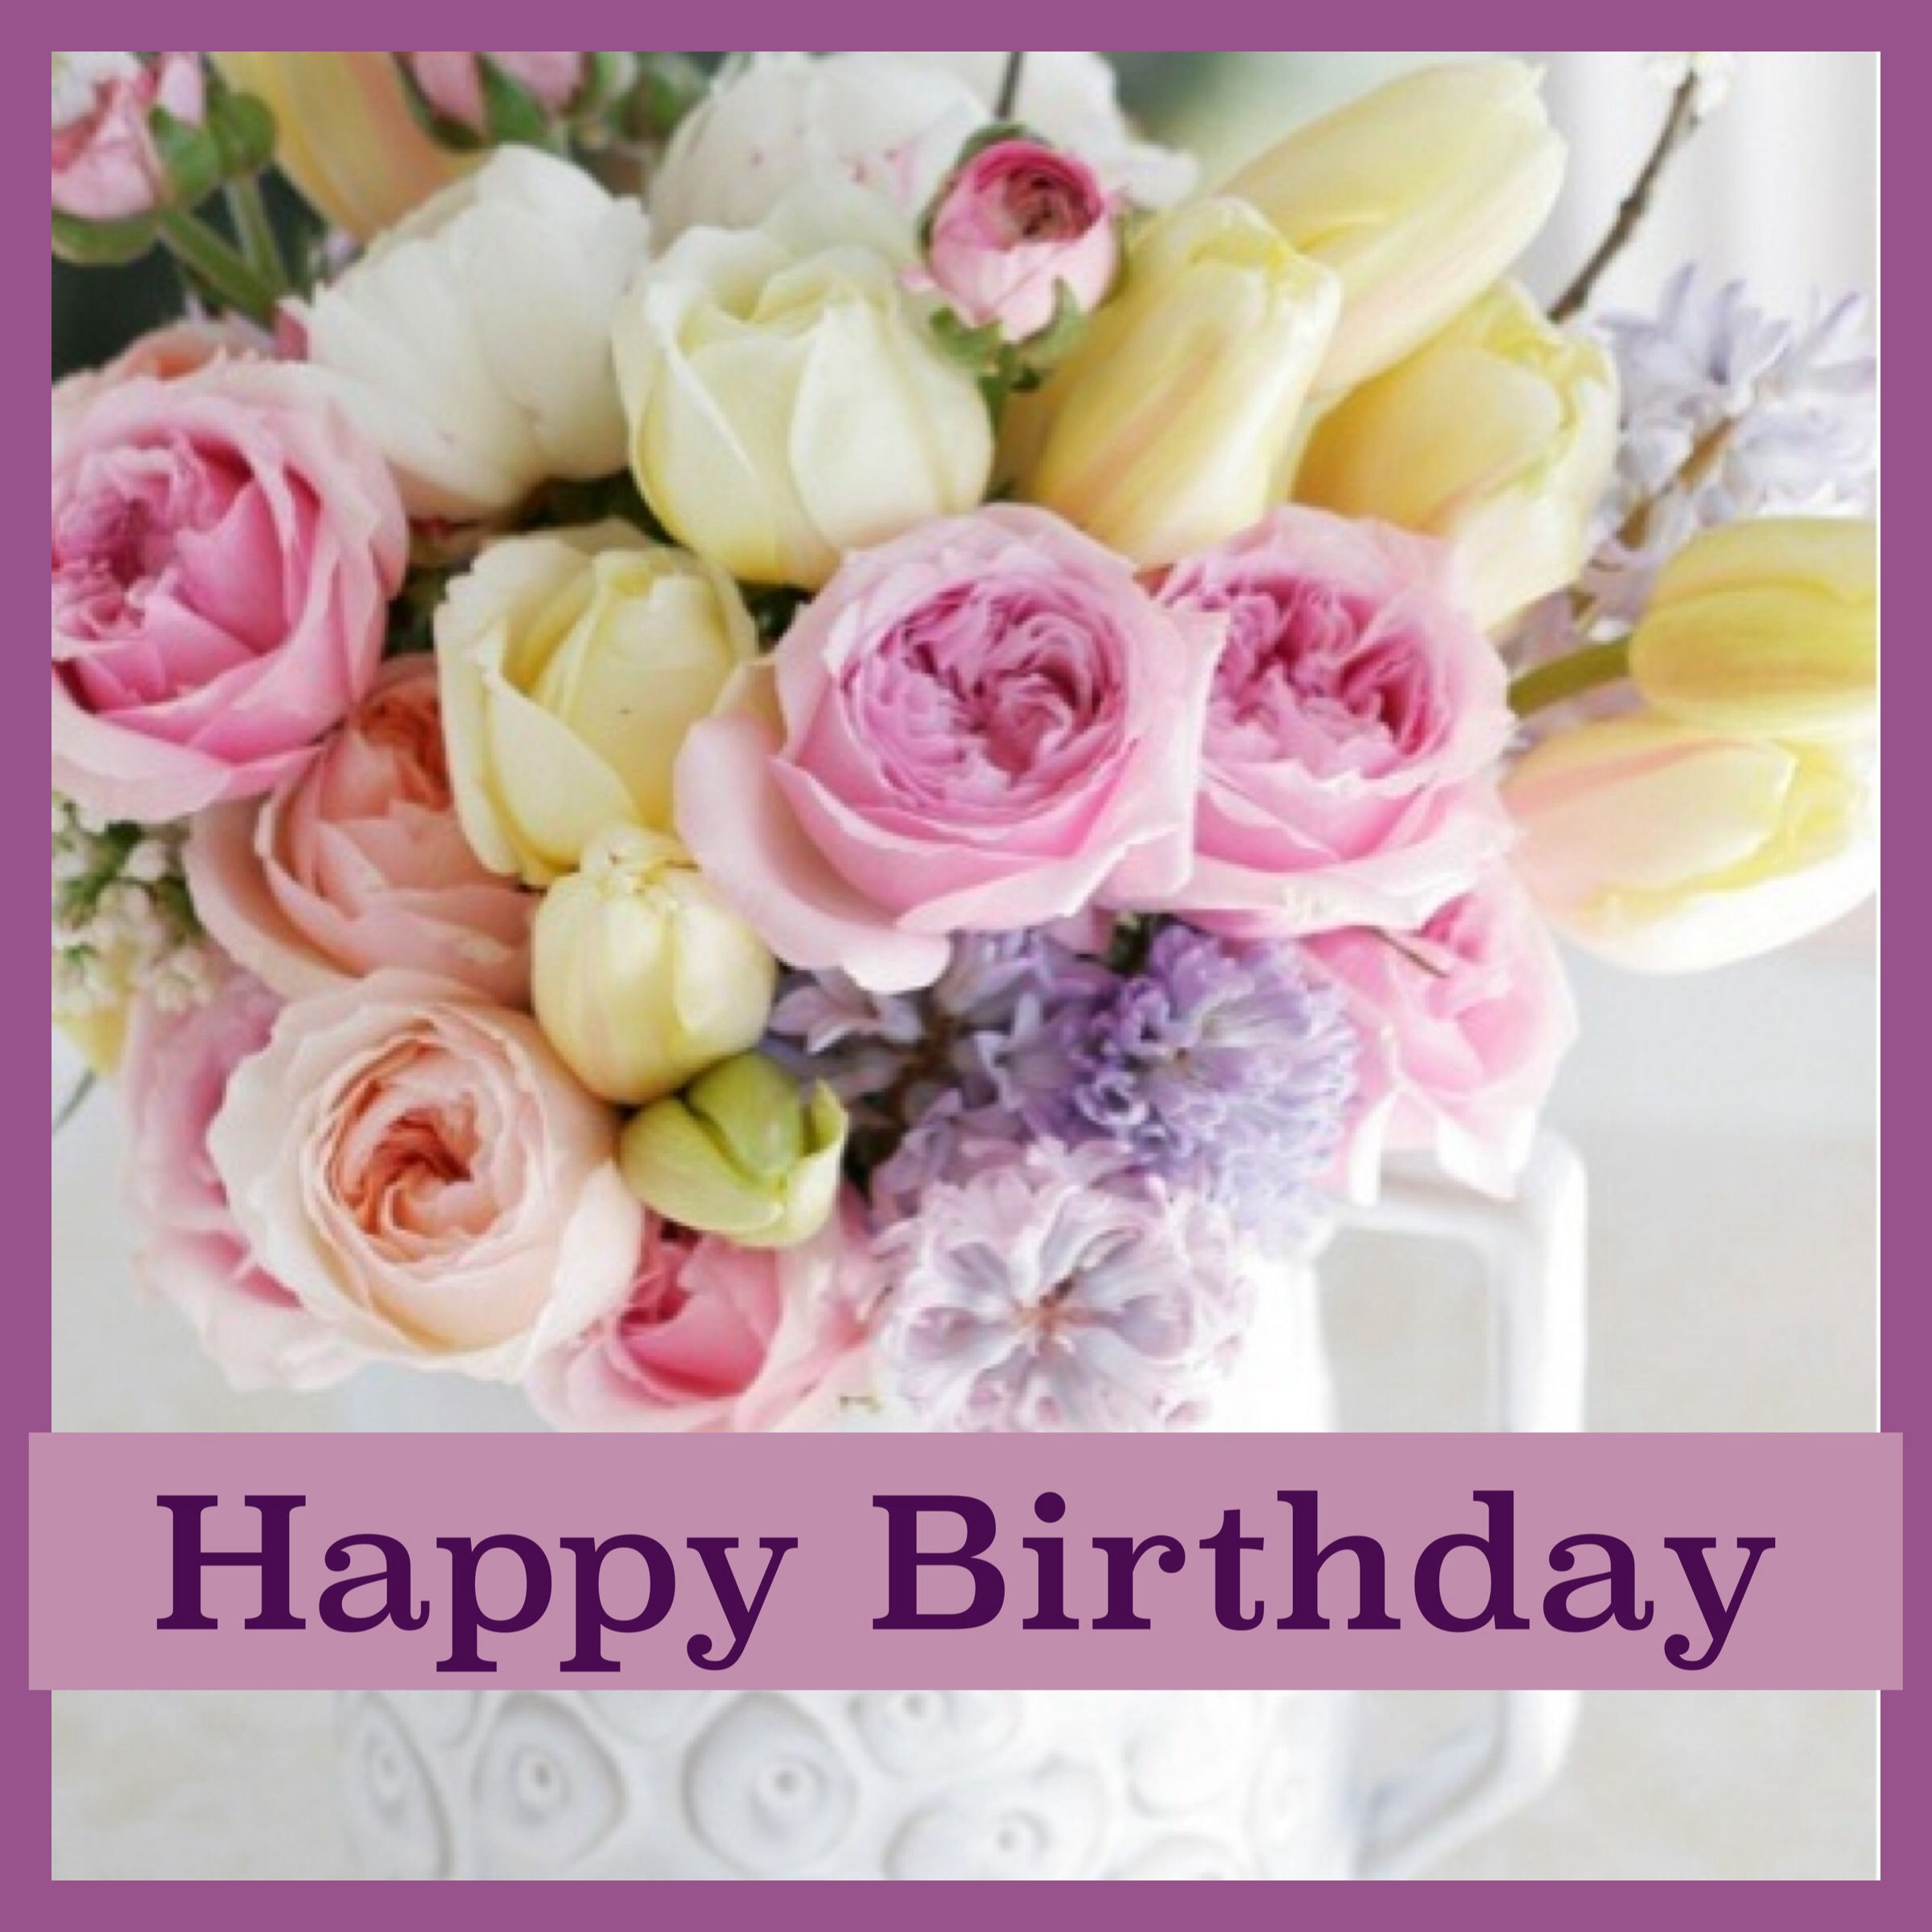 Happy birthday bouquet of flowers flower shop near me flower shop personalized roses live roses speaking roses las vegas flowers happy birthday personalized roses happy birthday bouquet in indianapolis in shadeland flower izmirmasajfo